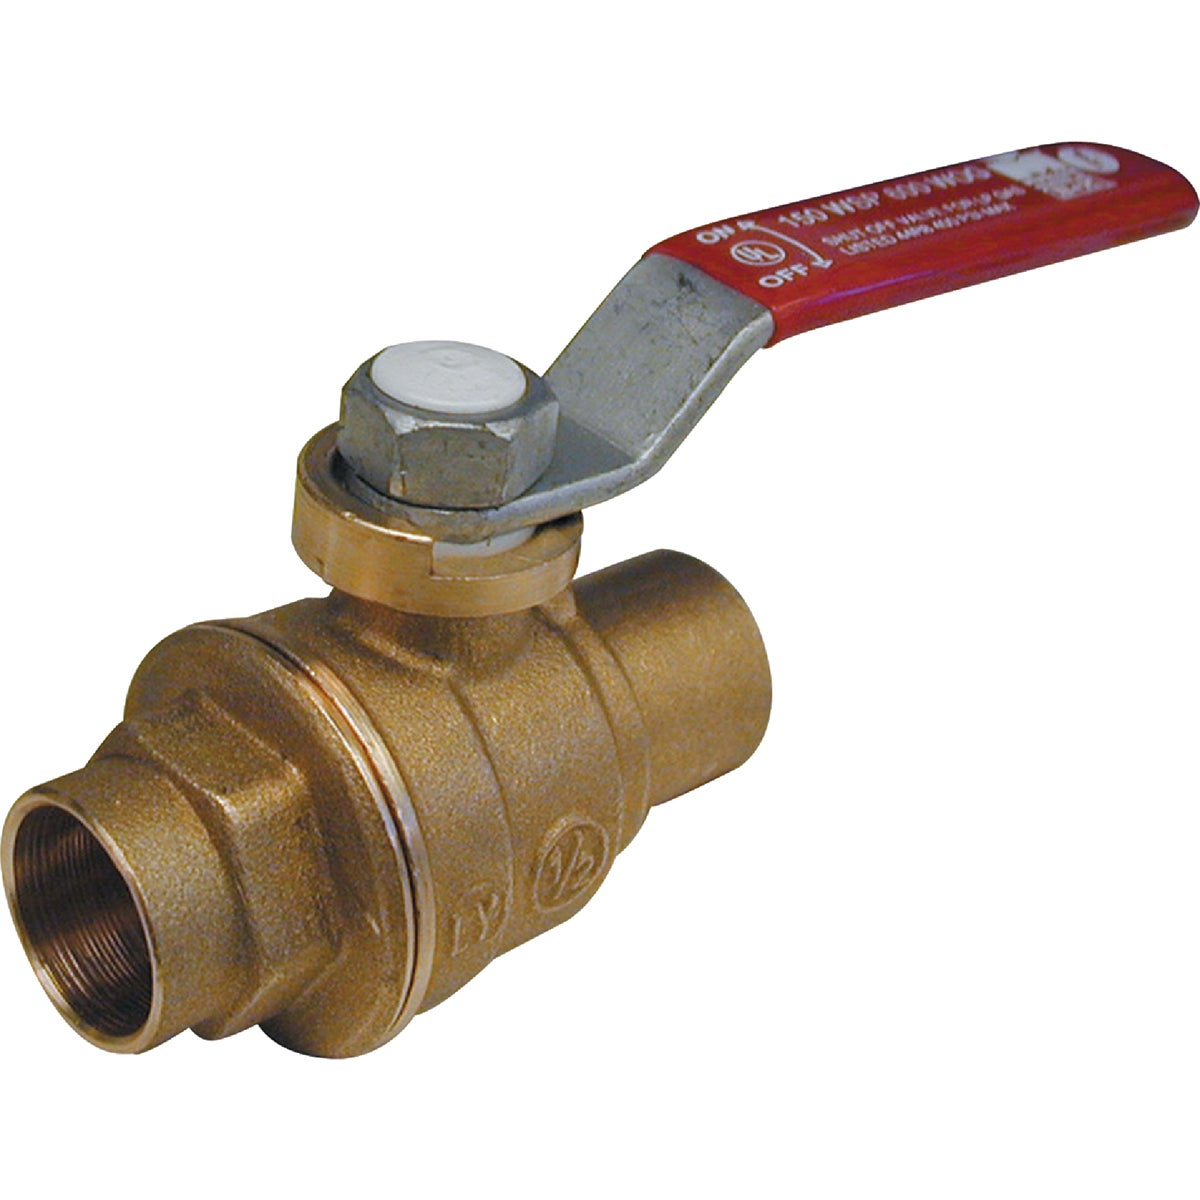 "1/2"" SWT BALL VALVE - 107-453NL by Mueller B K"